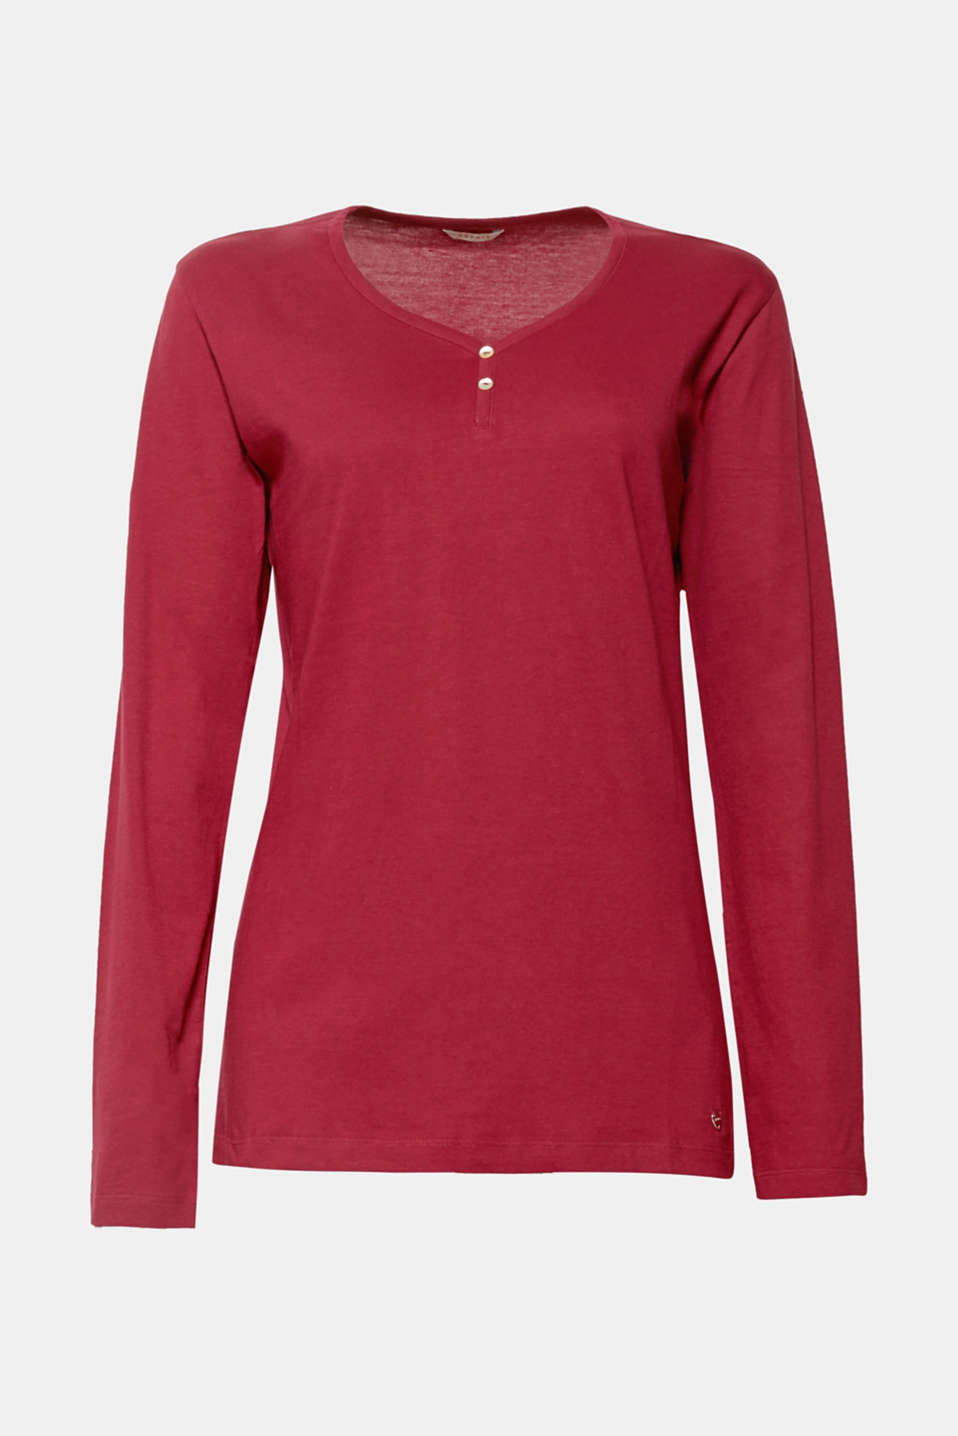 Super smooth and wonderfully comfortable! This long sleeve top made from soft cotton features a Henley neckline and offers exceptional comfort for sleeping and relaxing.